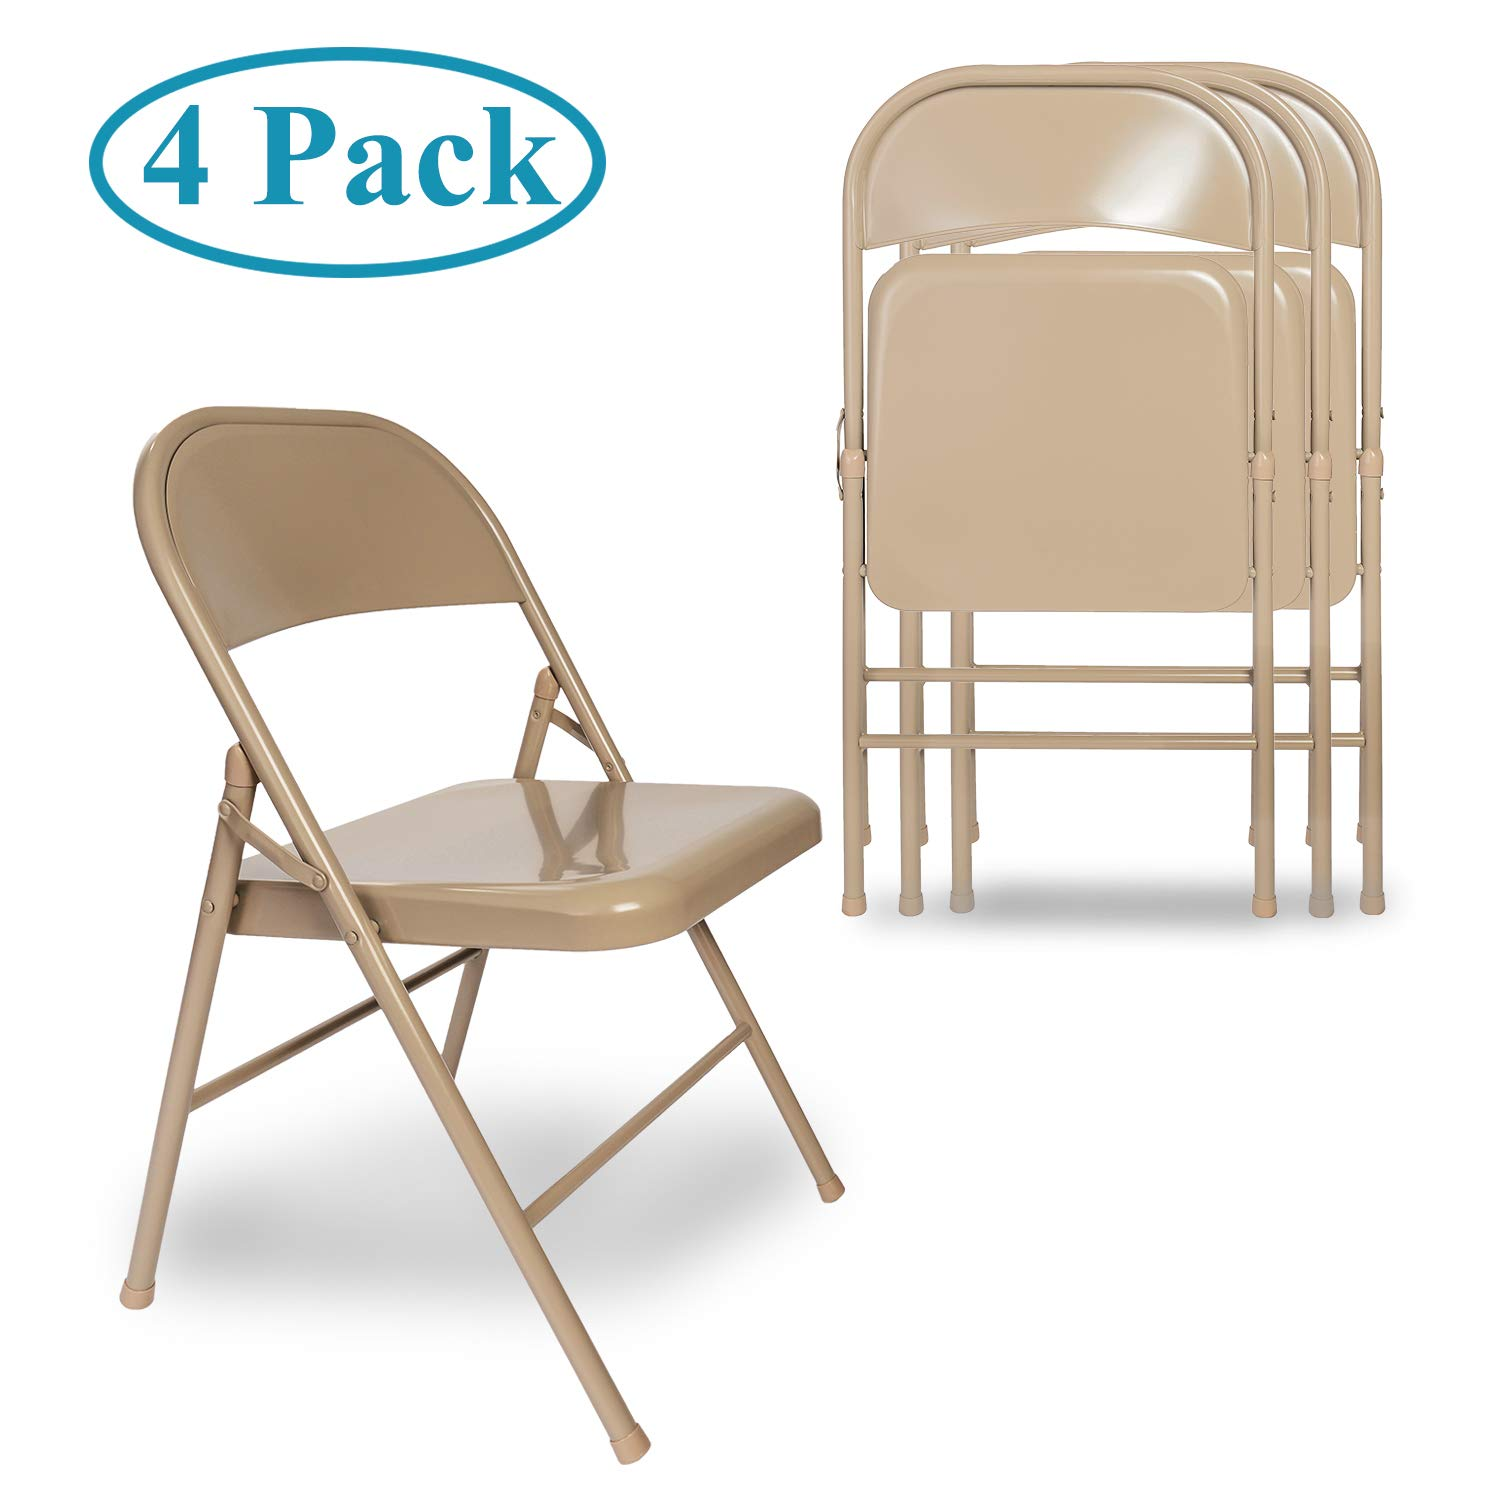 VECELO Folding Chair Back with Metal Frame for Home Office(Set of 4) Beige by VECELO